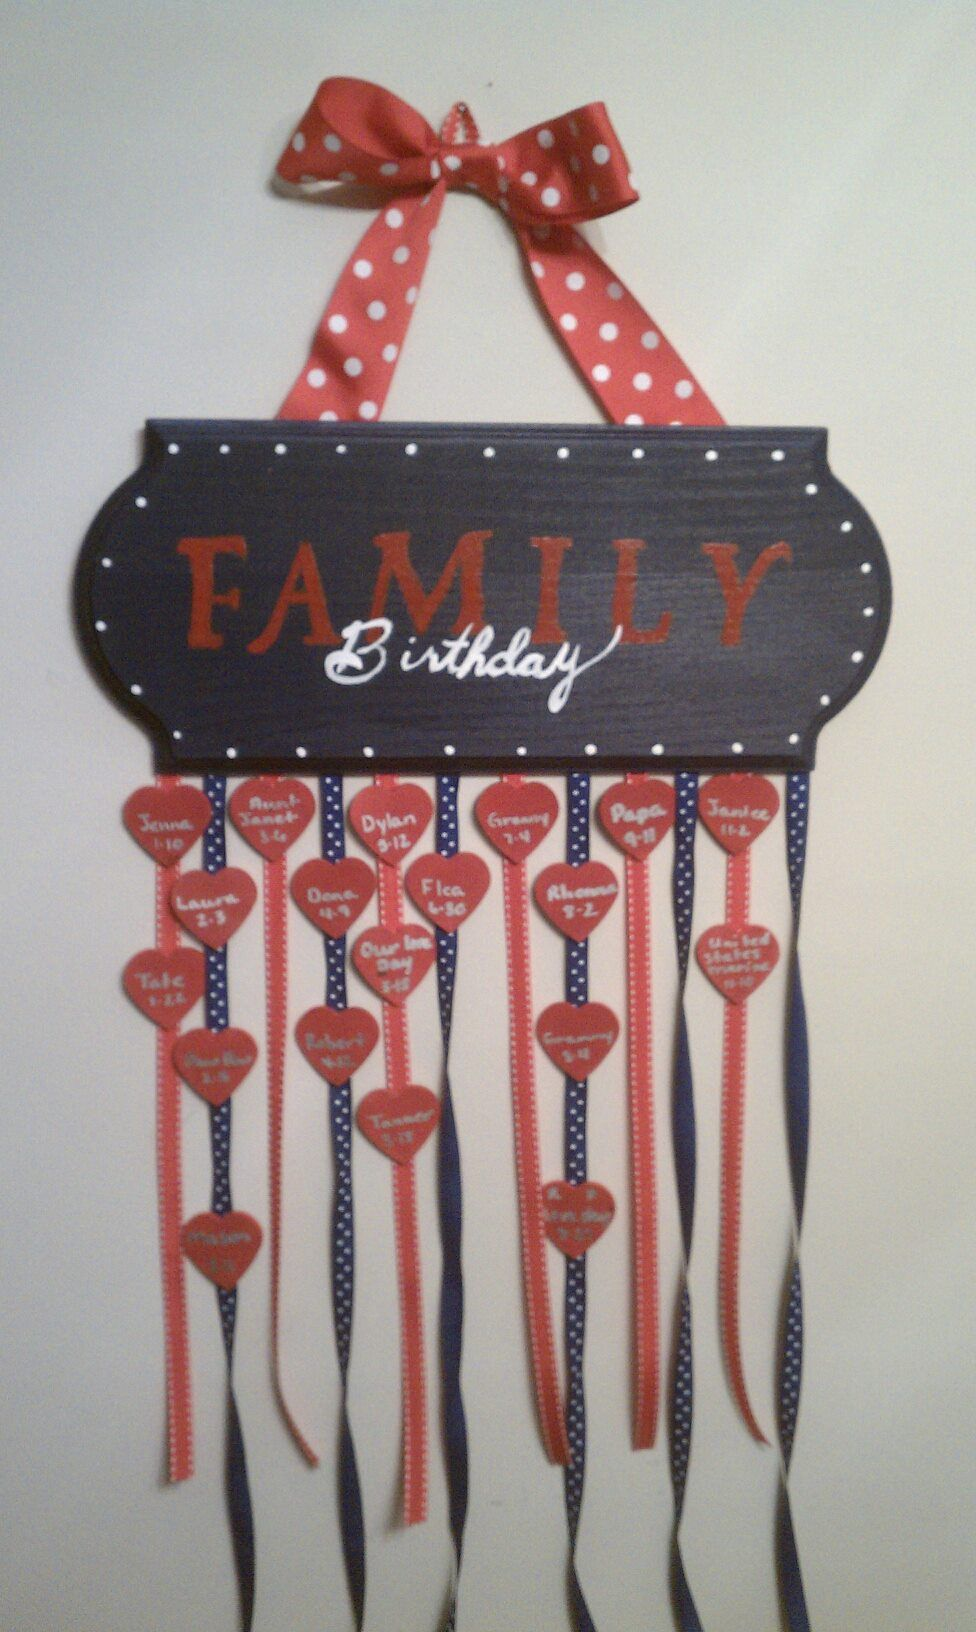 Family birthday wall hanging crafts pinterest - Craft ideas for wall hangings ...